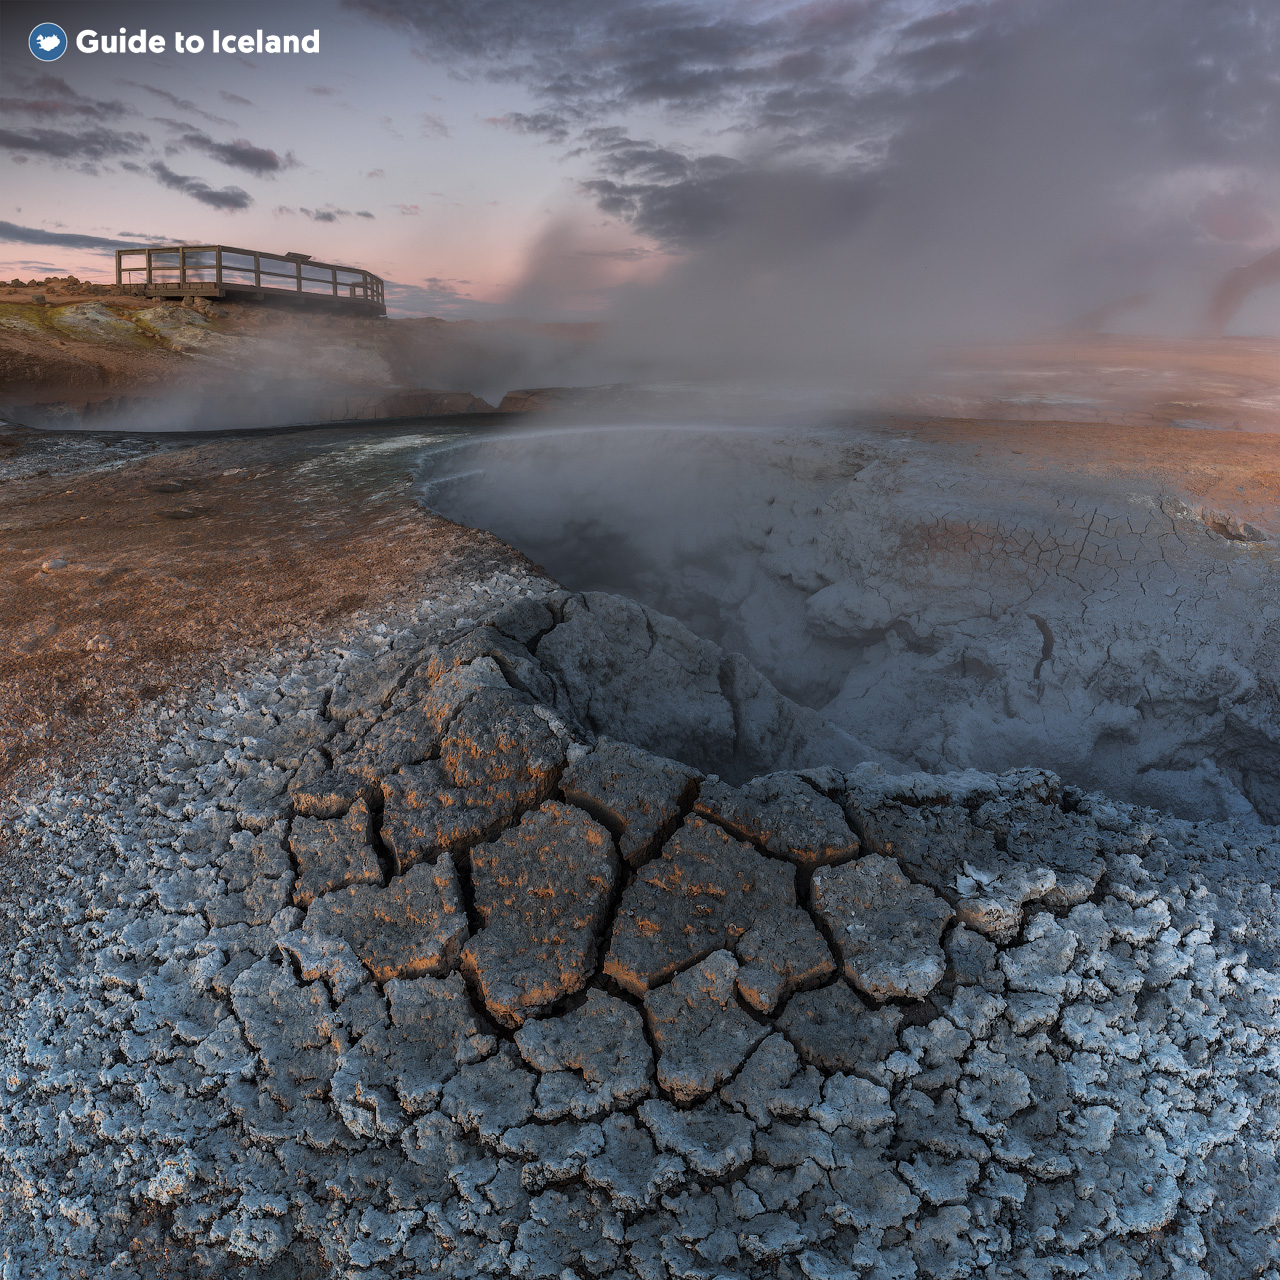 An image of the Geothermal North of Iceland.